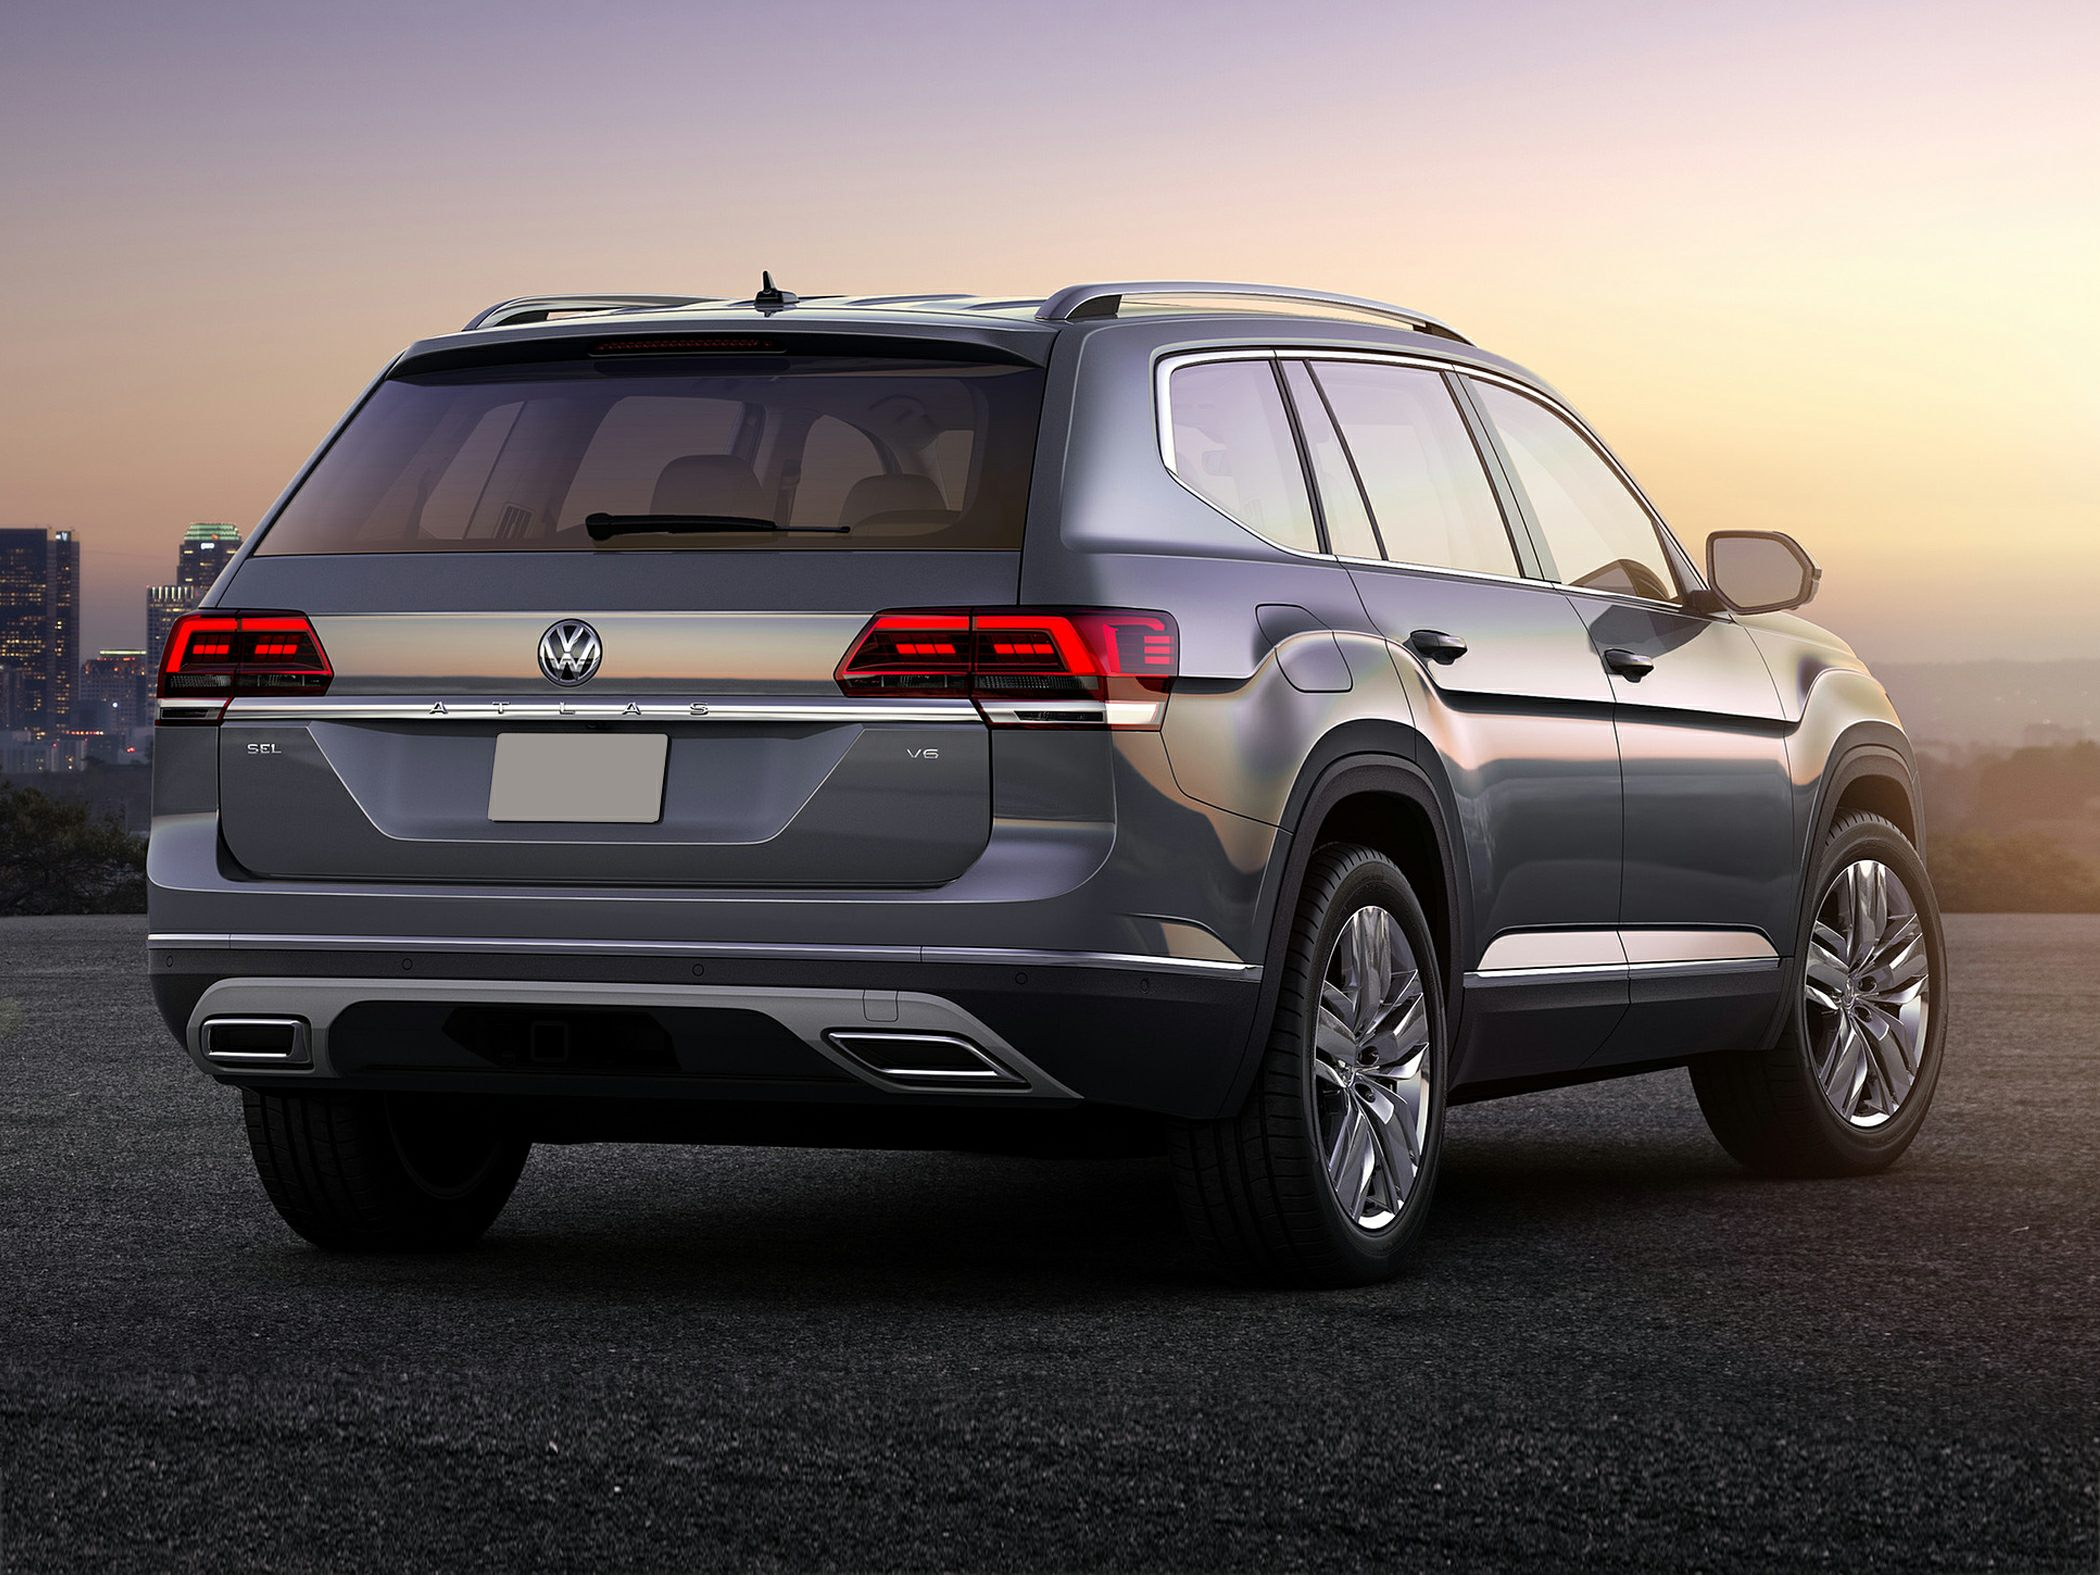 2019 Toyota Highlander Changes Options Pricing >> 2019 Volkswagen Atlas: Preview, Pricing, Release Date